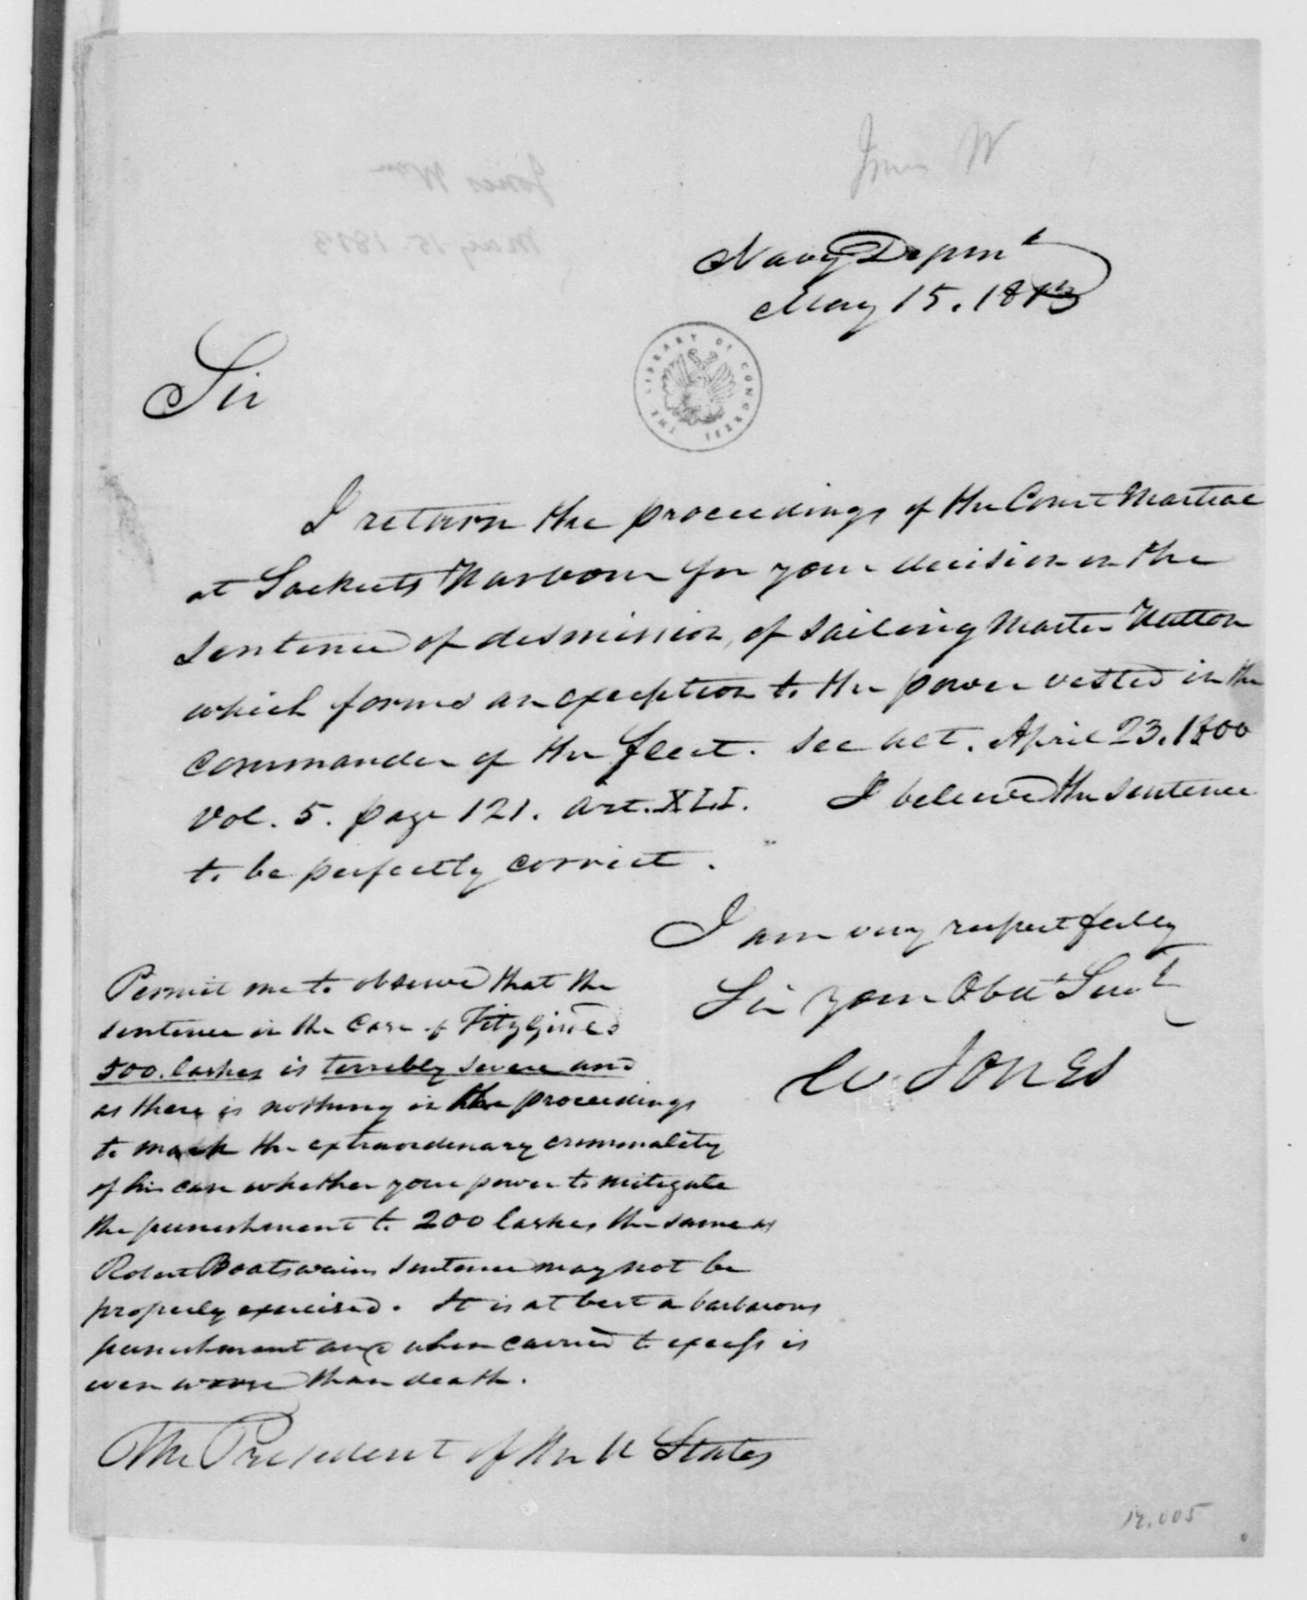 William Jones to James Madison, May 15, 1813. Includes extract from Sinclair May 16, 1813.